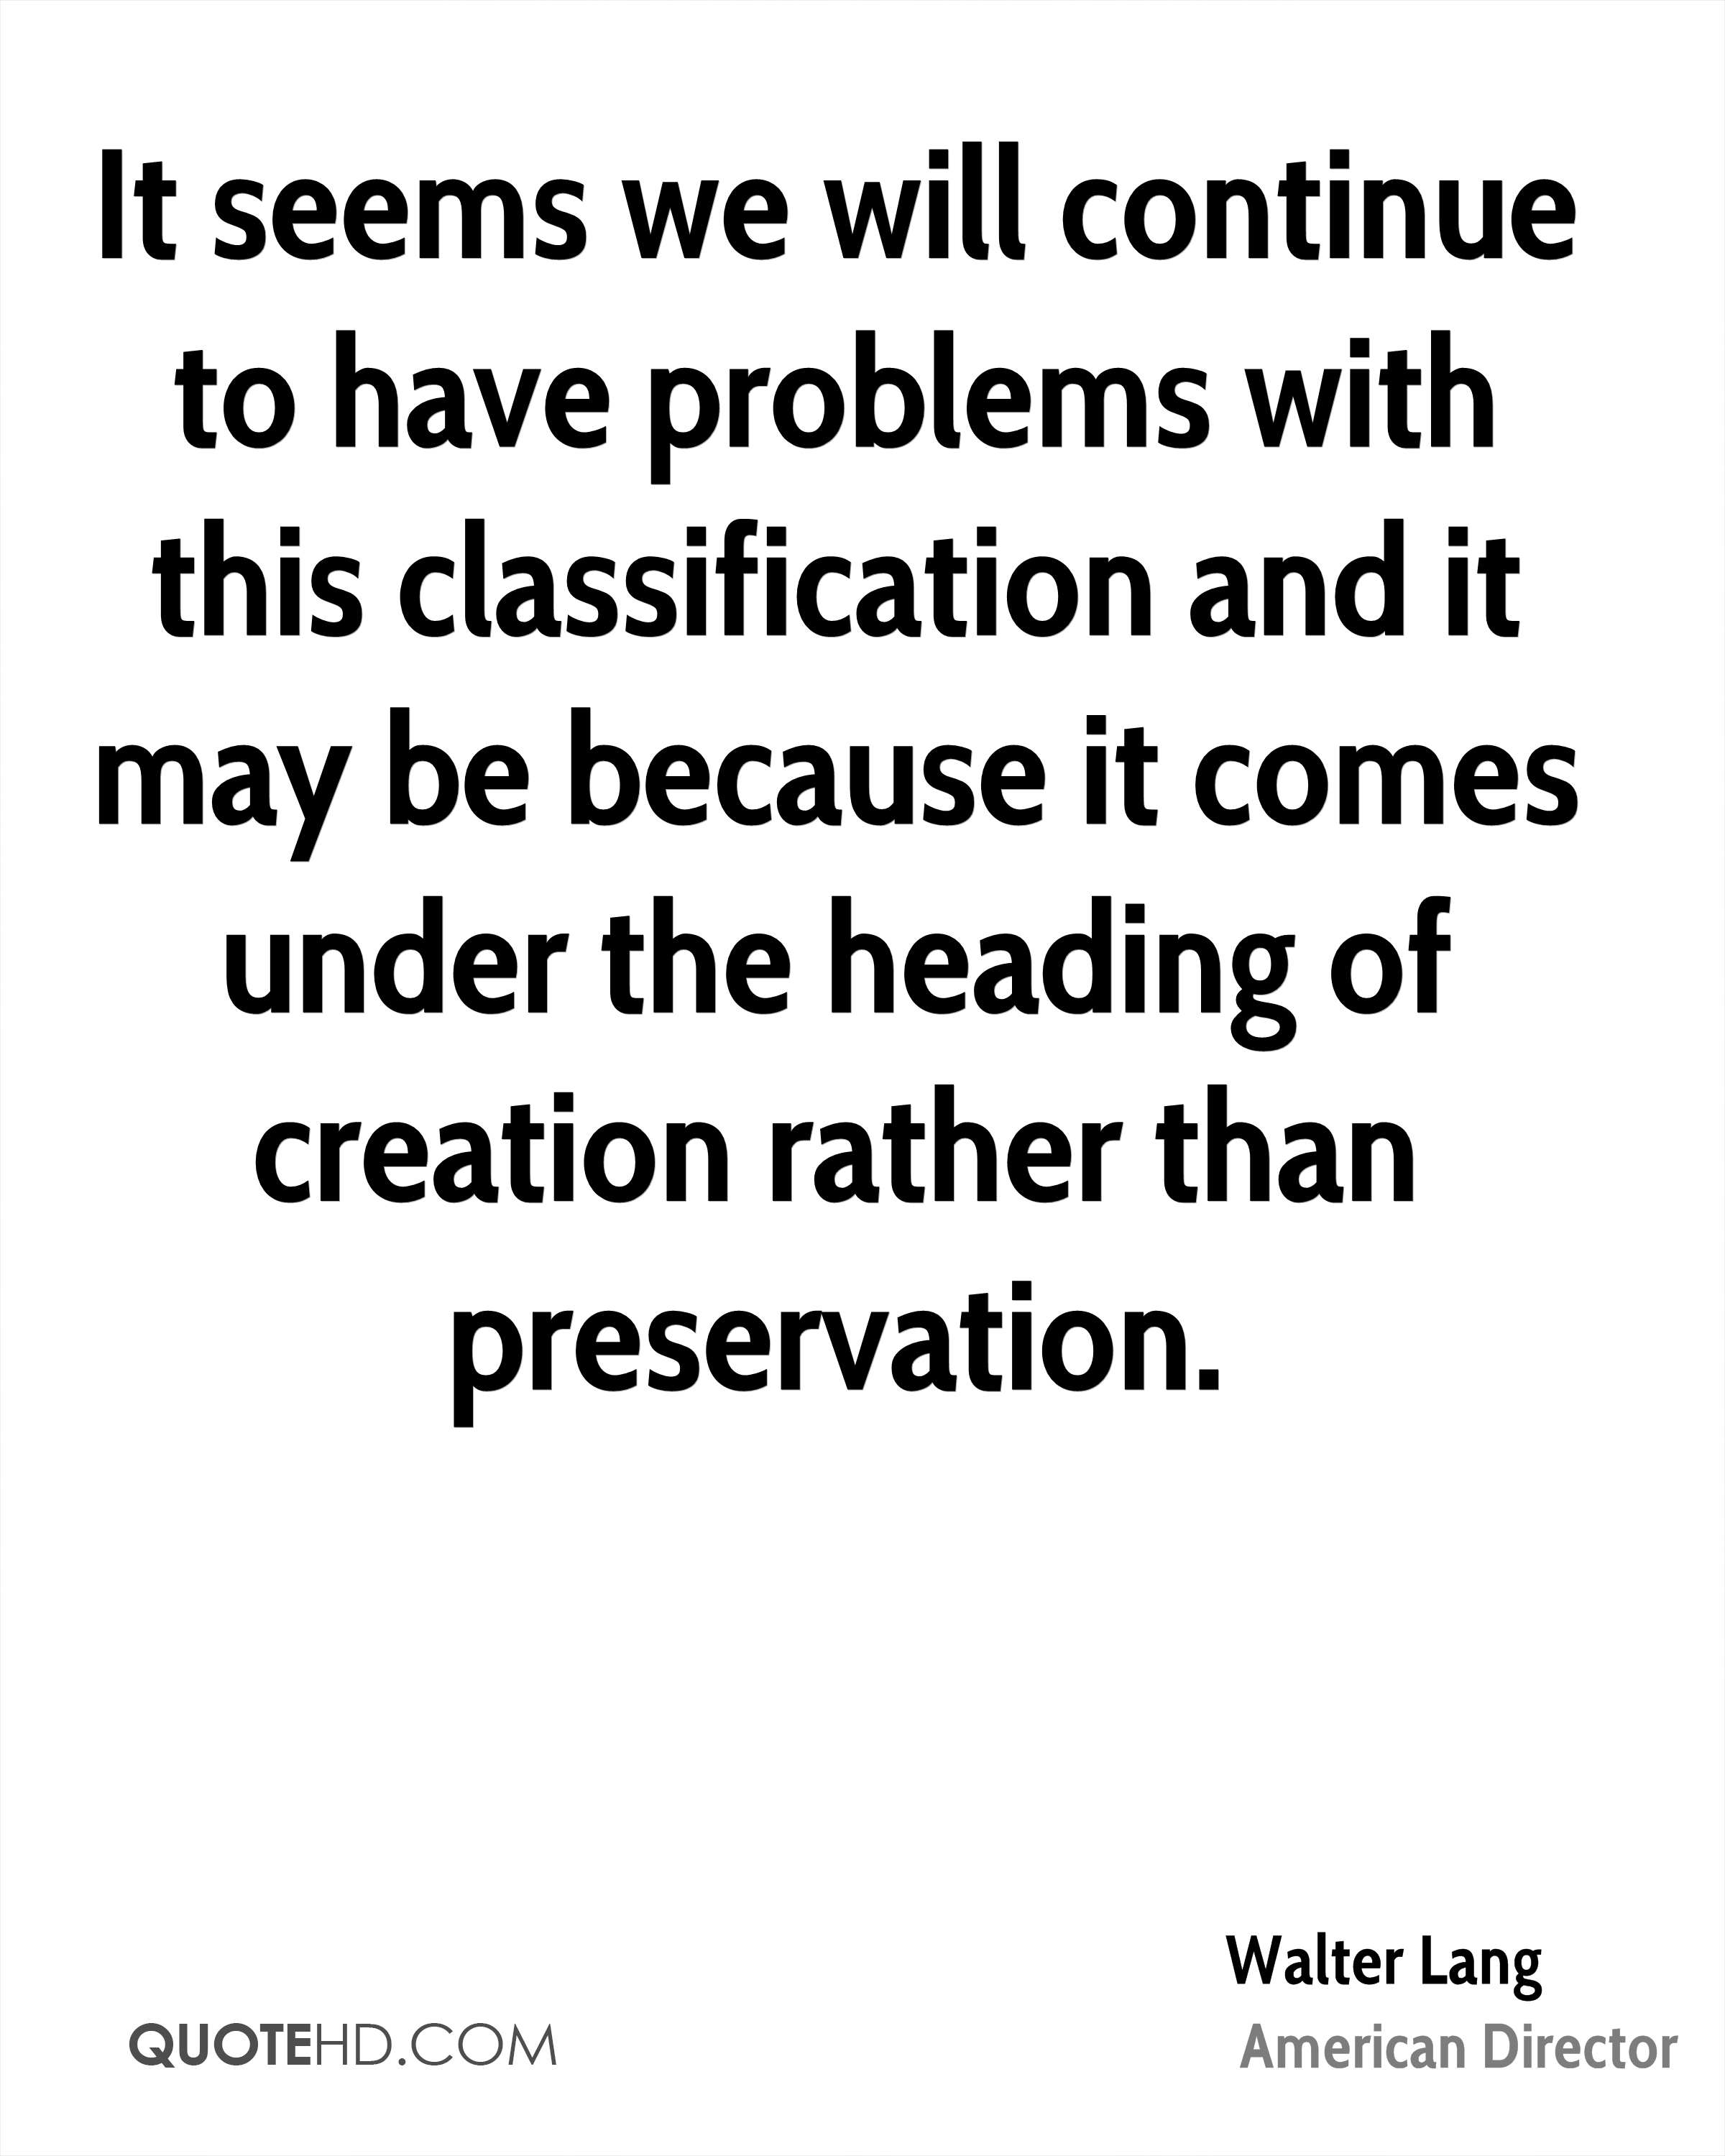 It seems we will continue to have problems with this classification and it may be because it comes under the heading of creation rather than preservation.